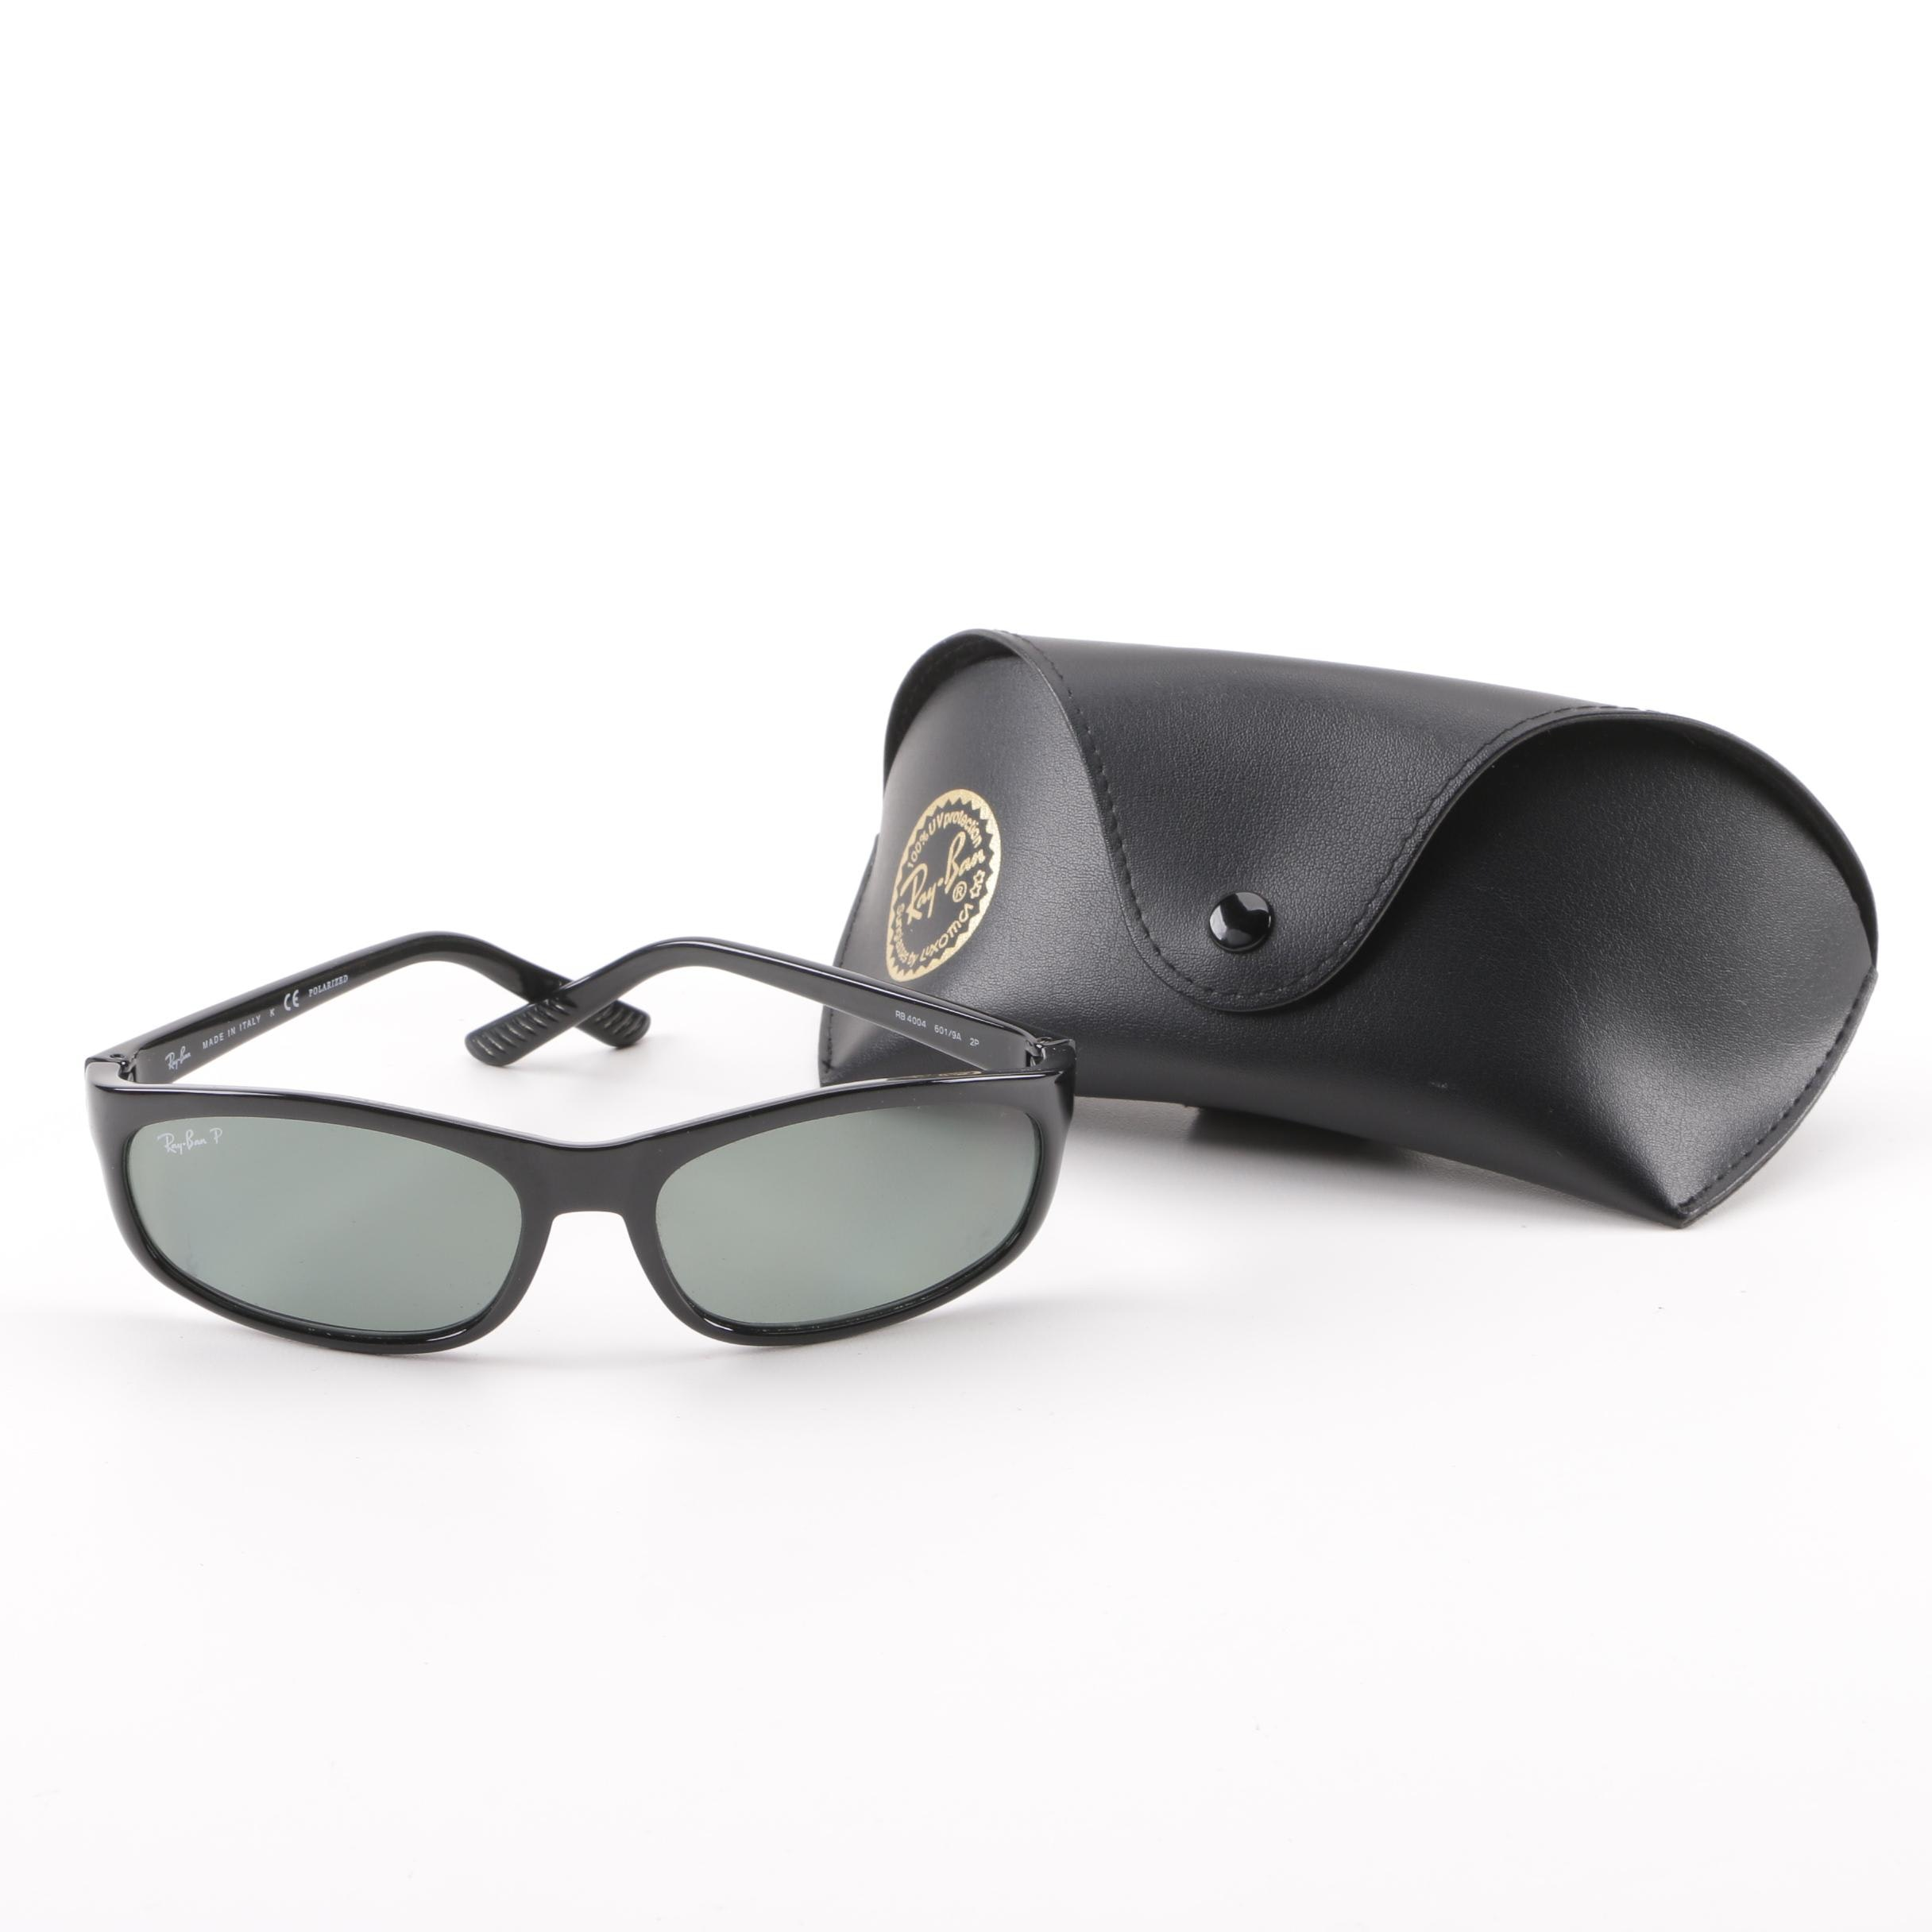 Ray-Ban RB 4004 Black Polarized Sunglasses with Case